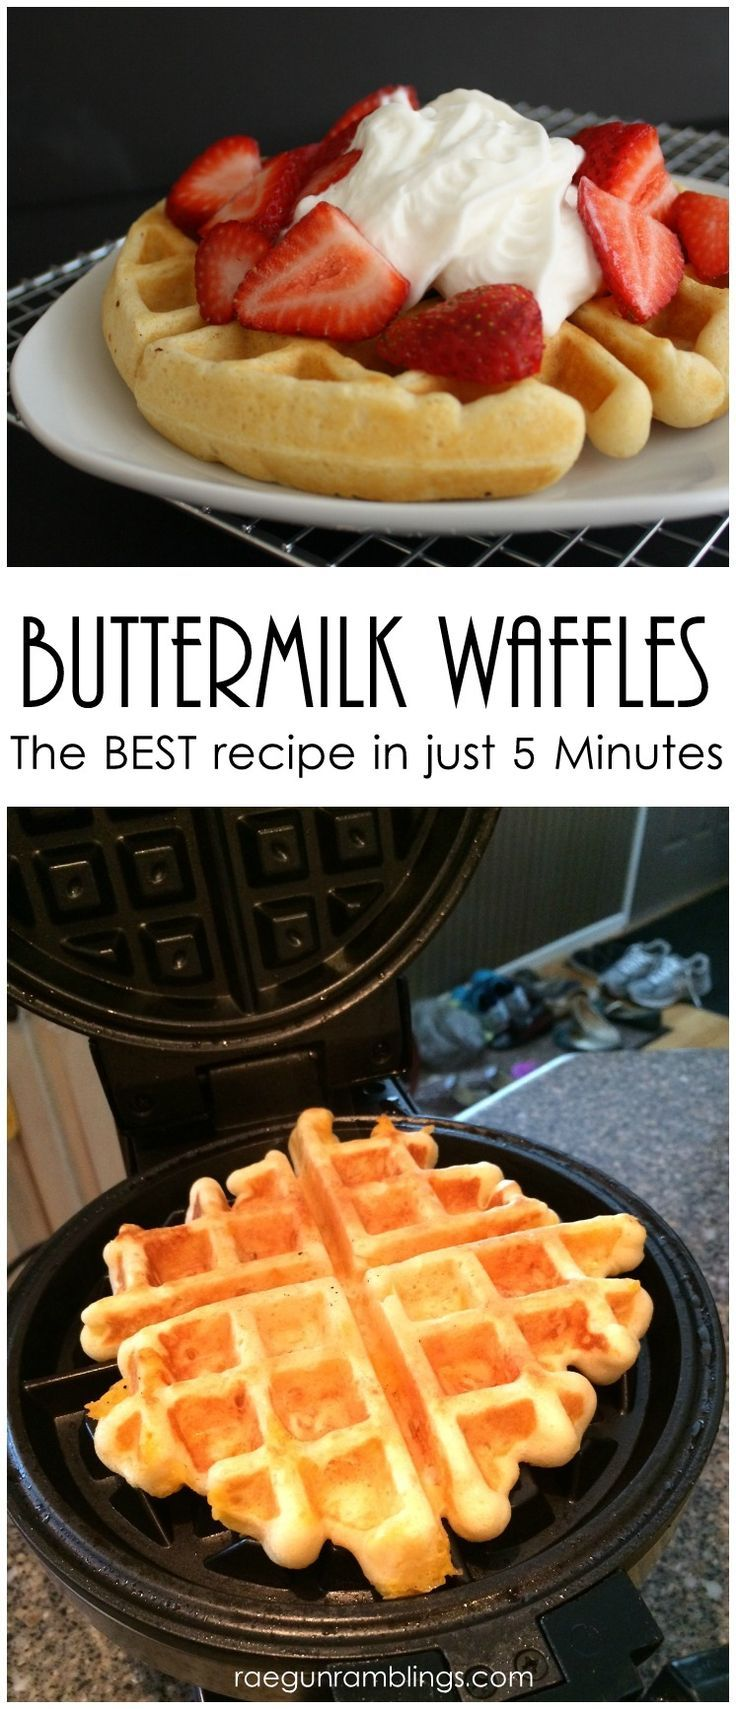 Make waffle irons known for another delicious breakfast food—omelets. Simply cook the eggs right in the iron for a delicious and quick meal. Simply cook the eggs right in the iron for a delicious and quick meal.